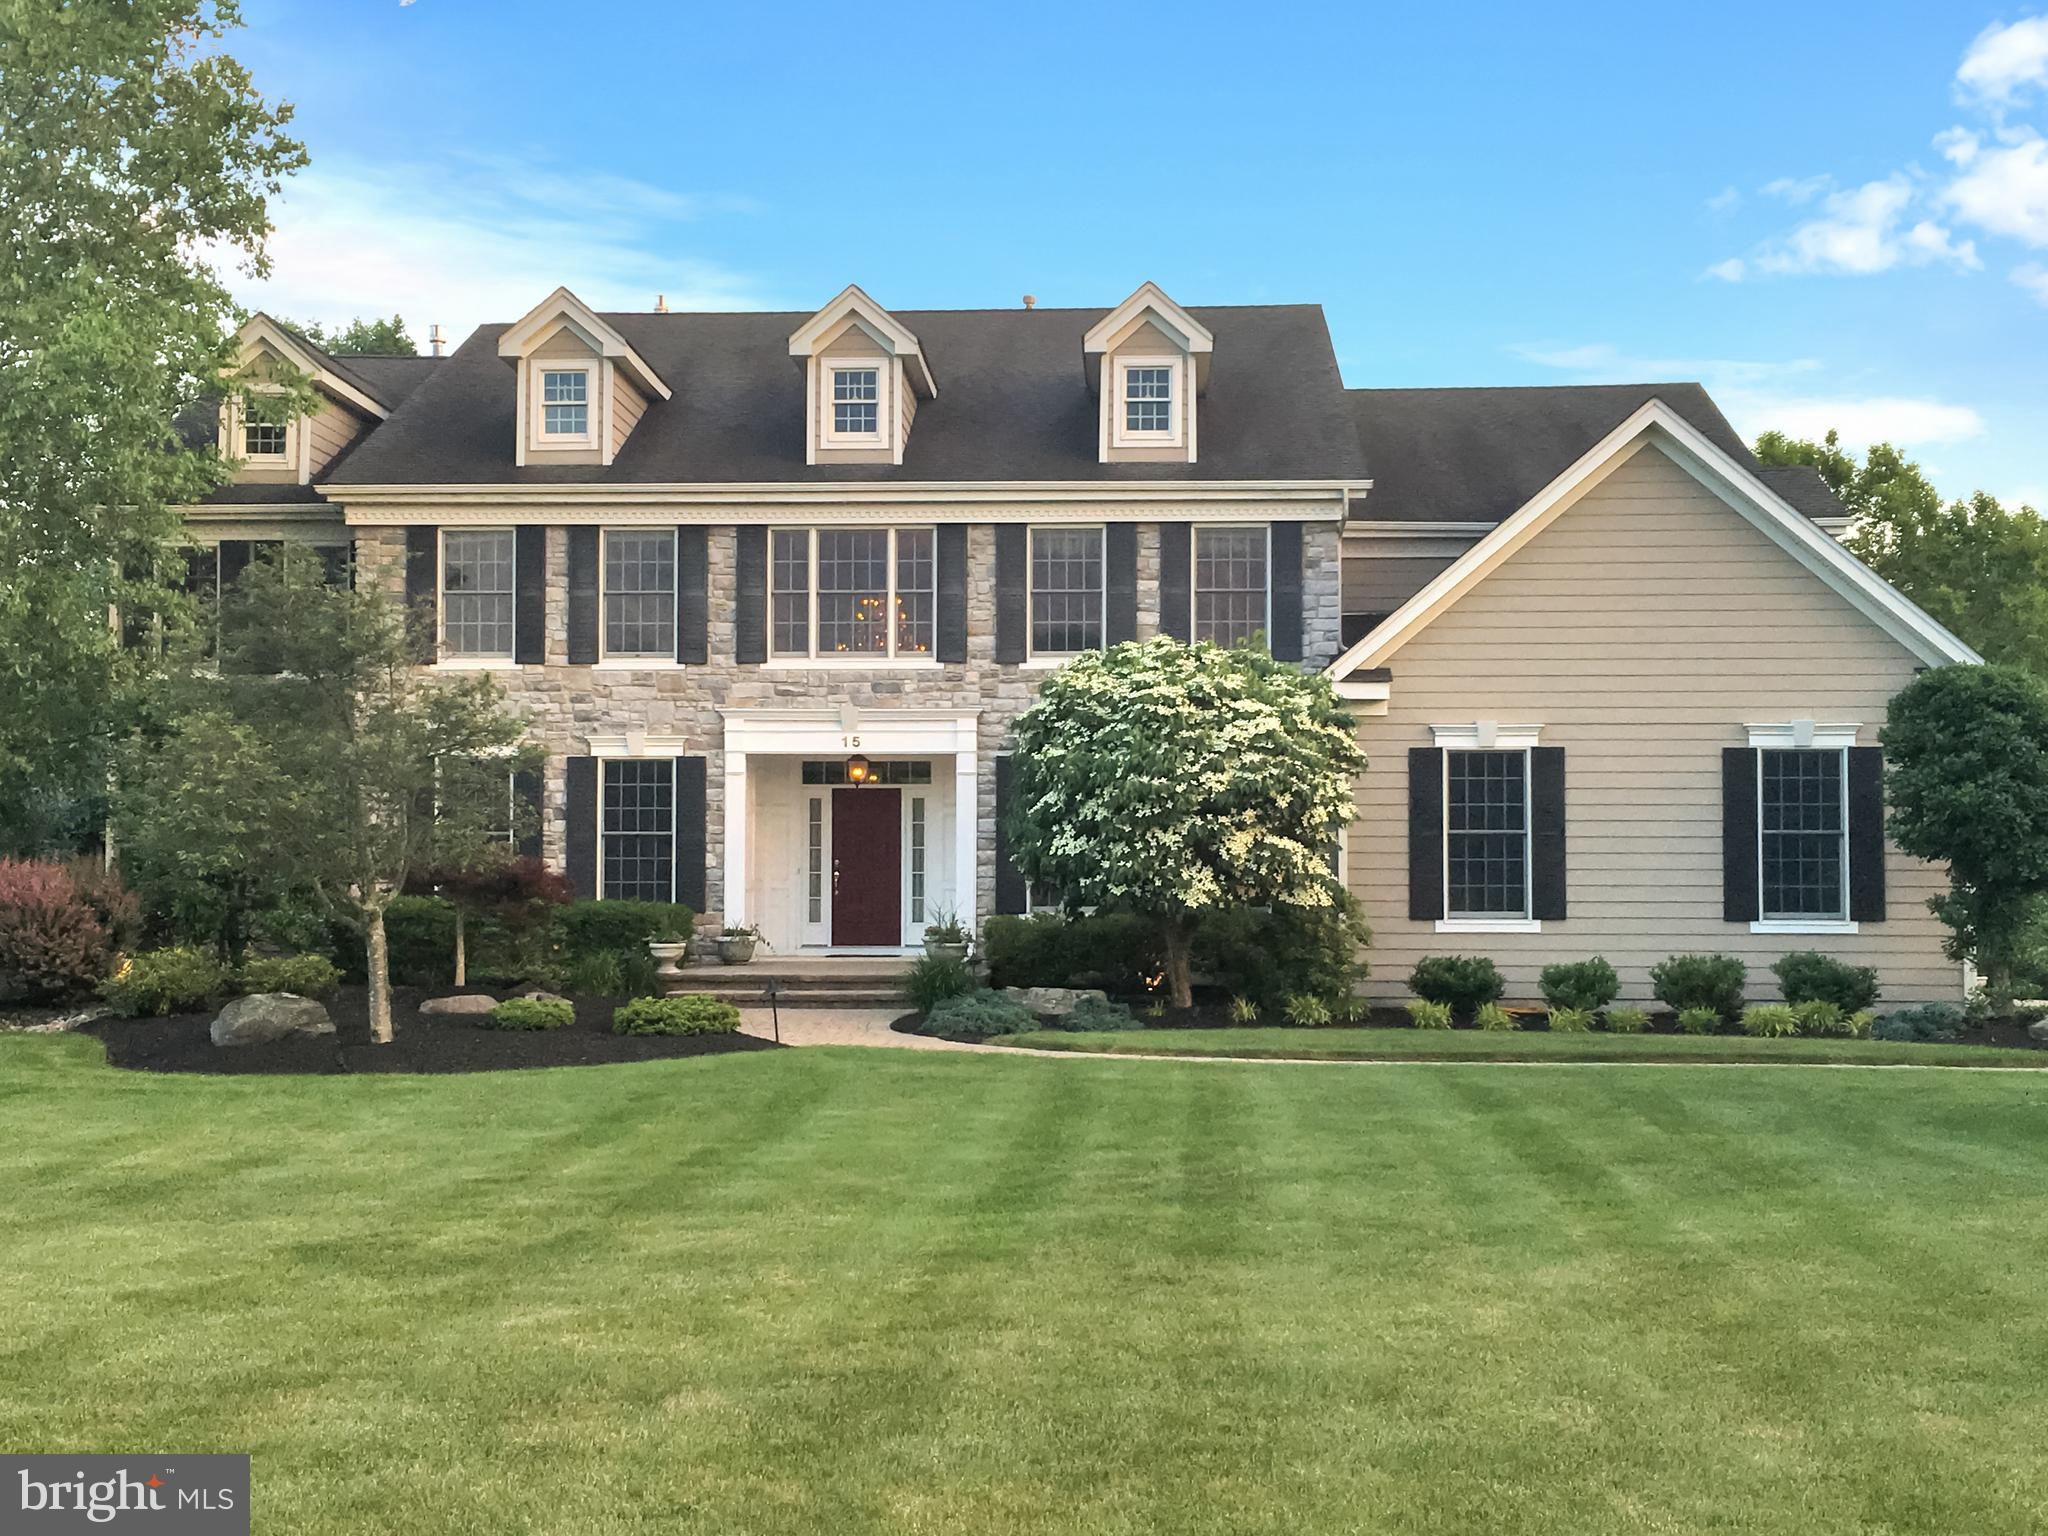 15 SPARROW COURT, SKILLMAN, NJ 08558